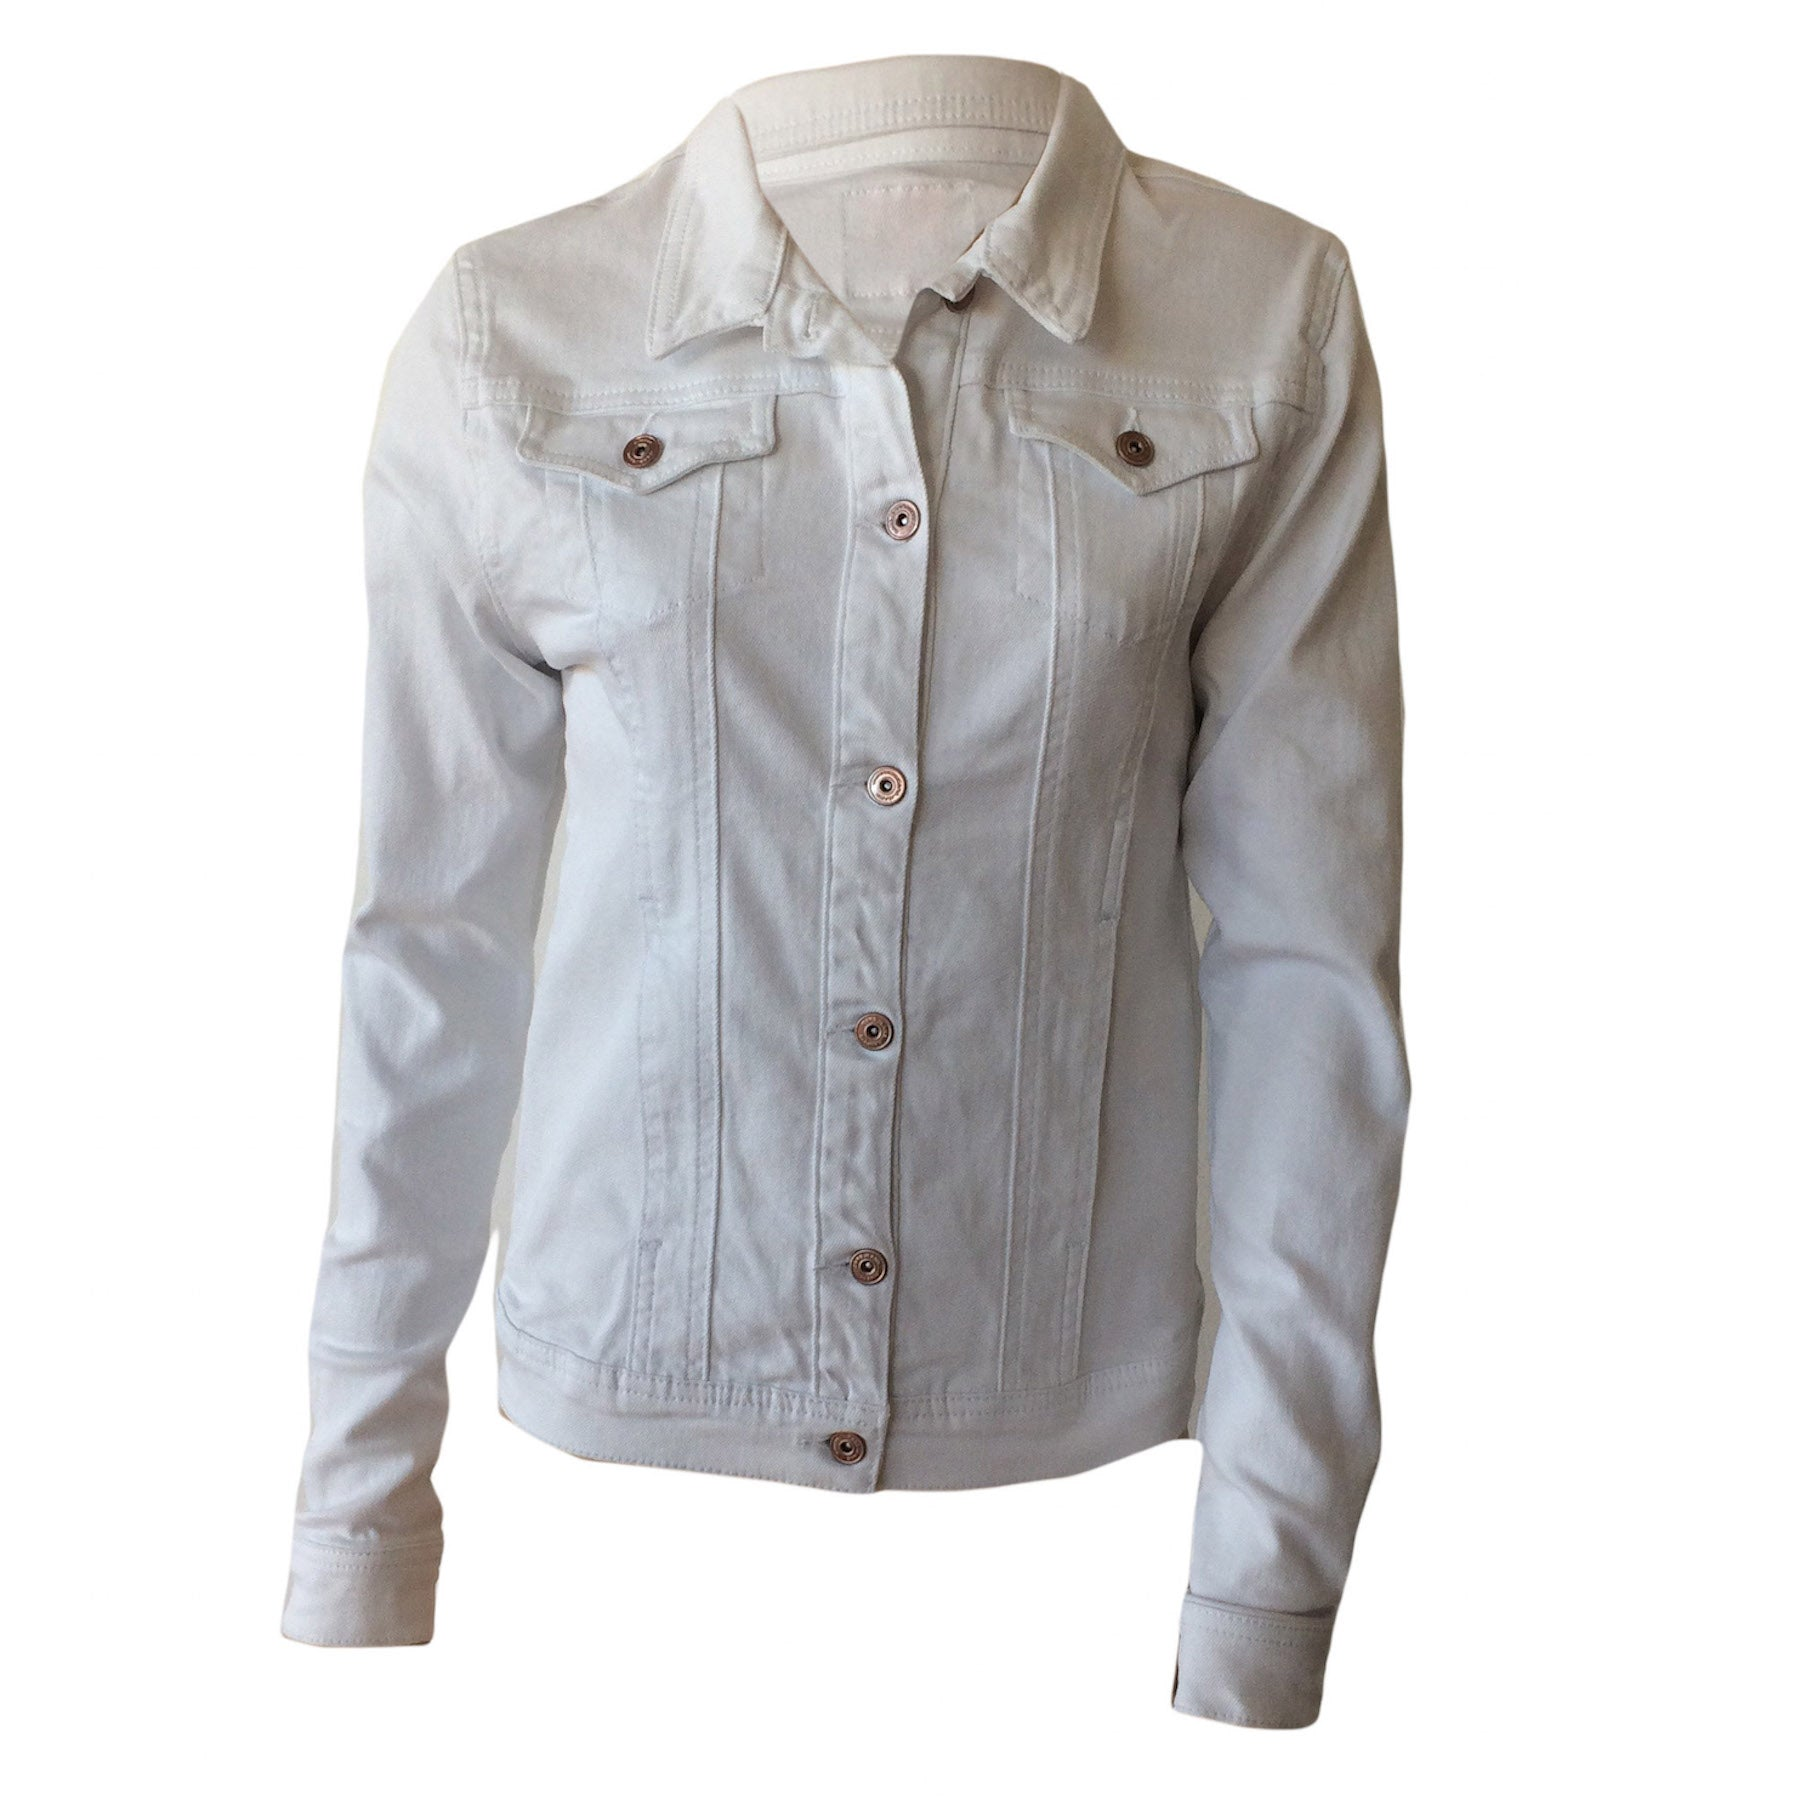 White Denim Jacket, Cars Jeans, Girls White Denim Jacket